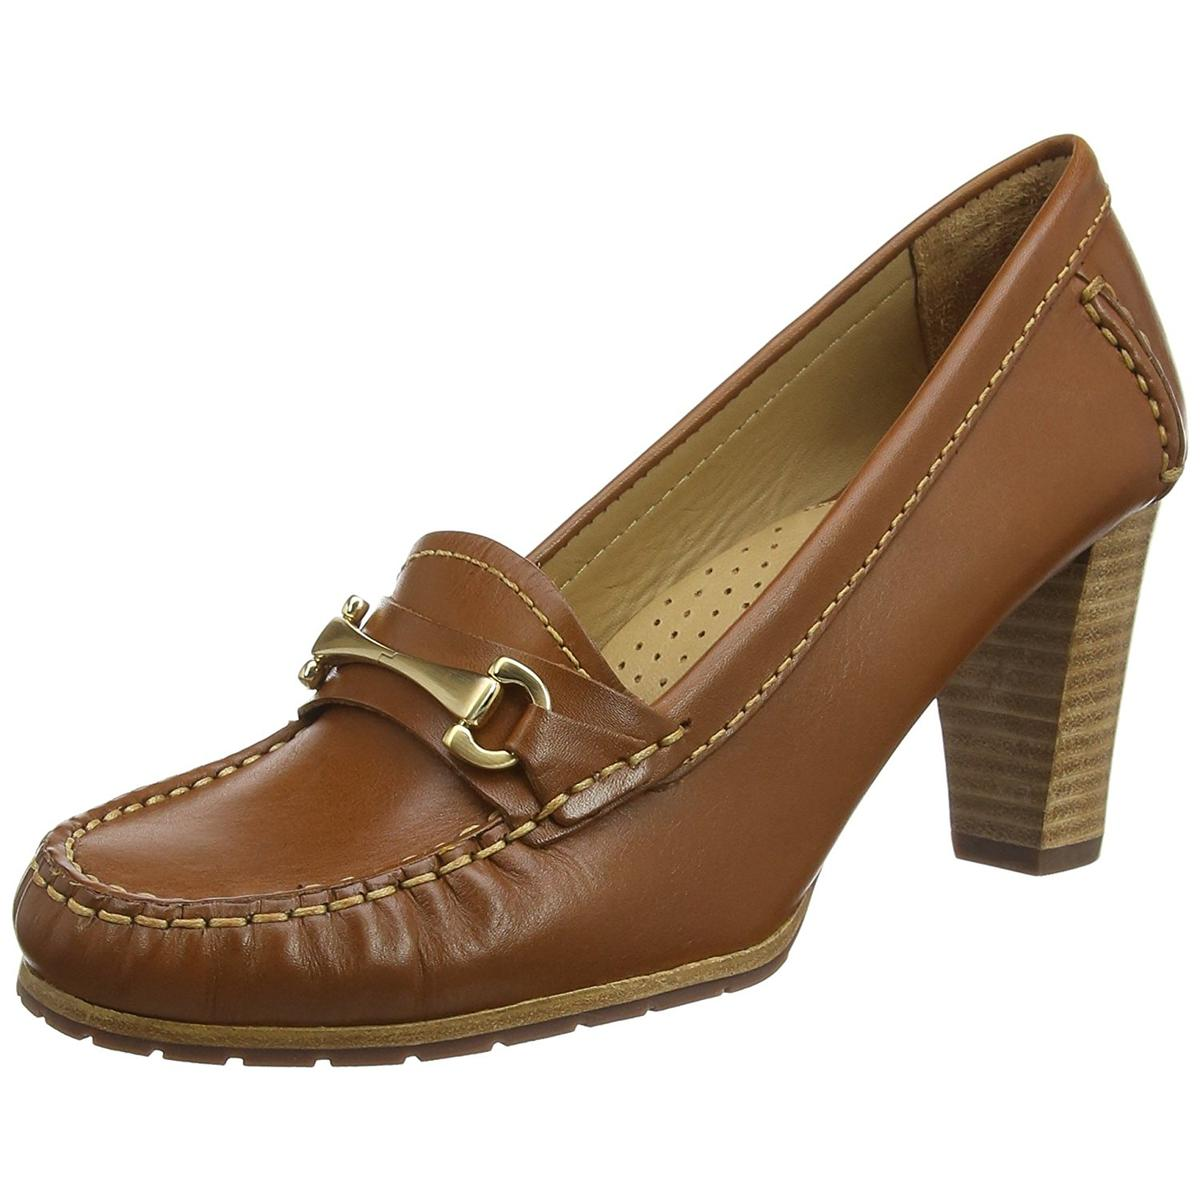 Hush Puppies Castana Womens Cognac Heels by Hush Puppies